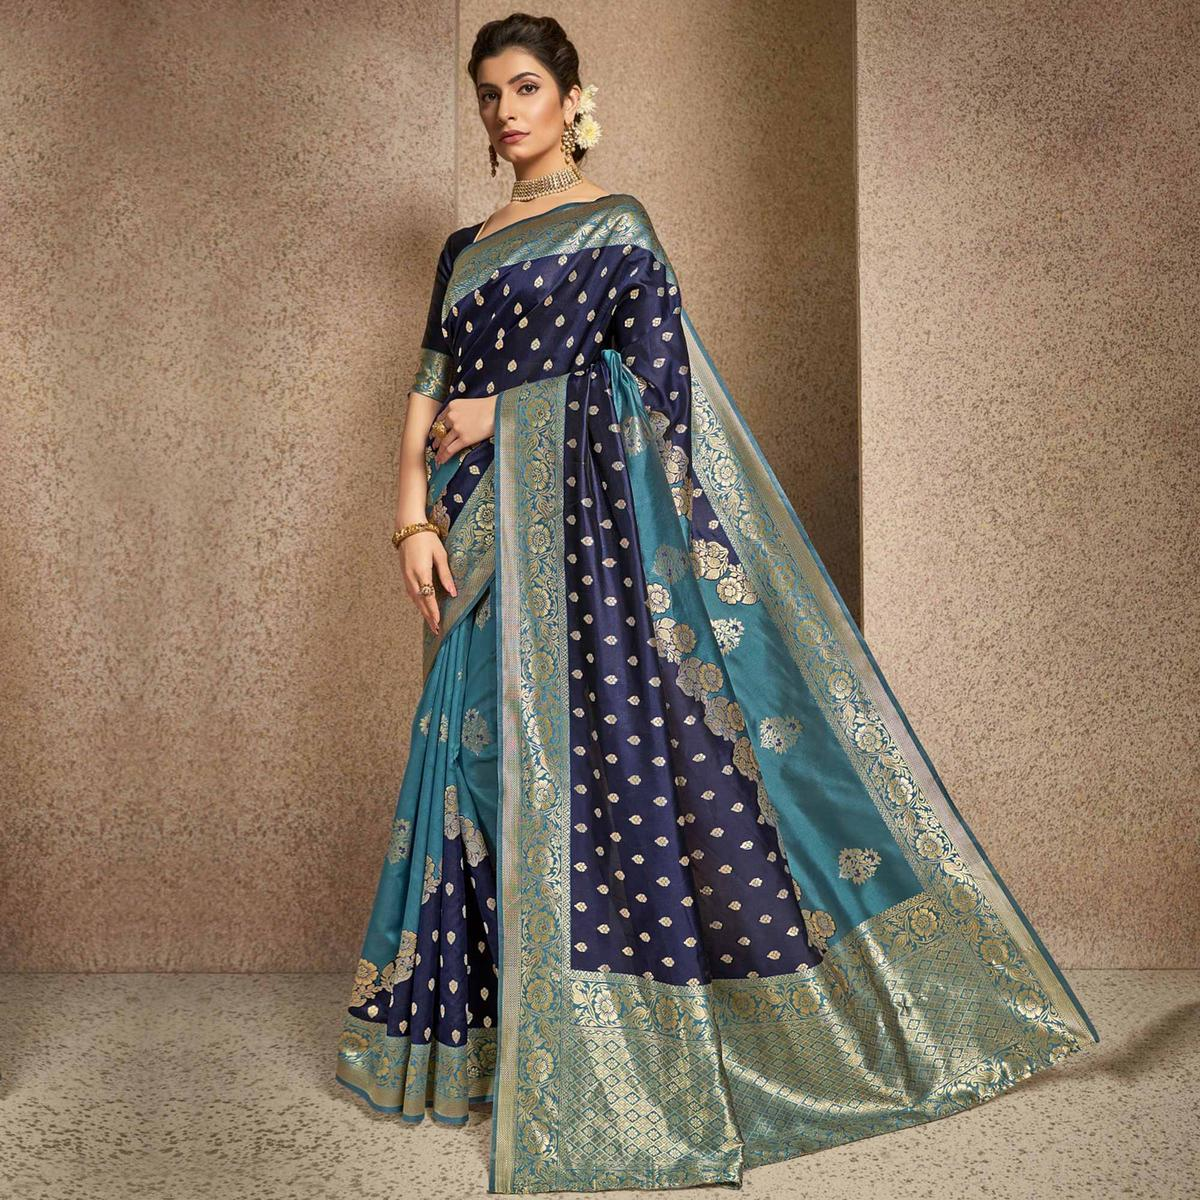 Triveni Navy Blue & Green Colored Jacquard Silk Party Wear Jacquard Woven Saree With Blouse Piece